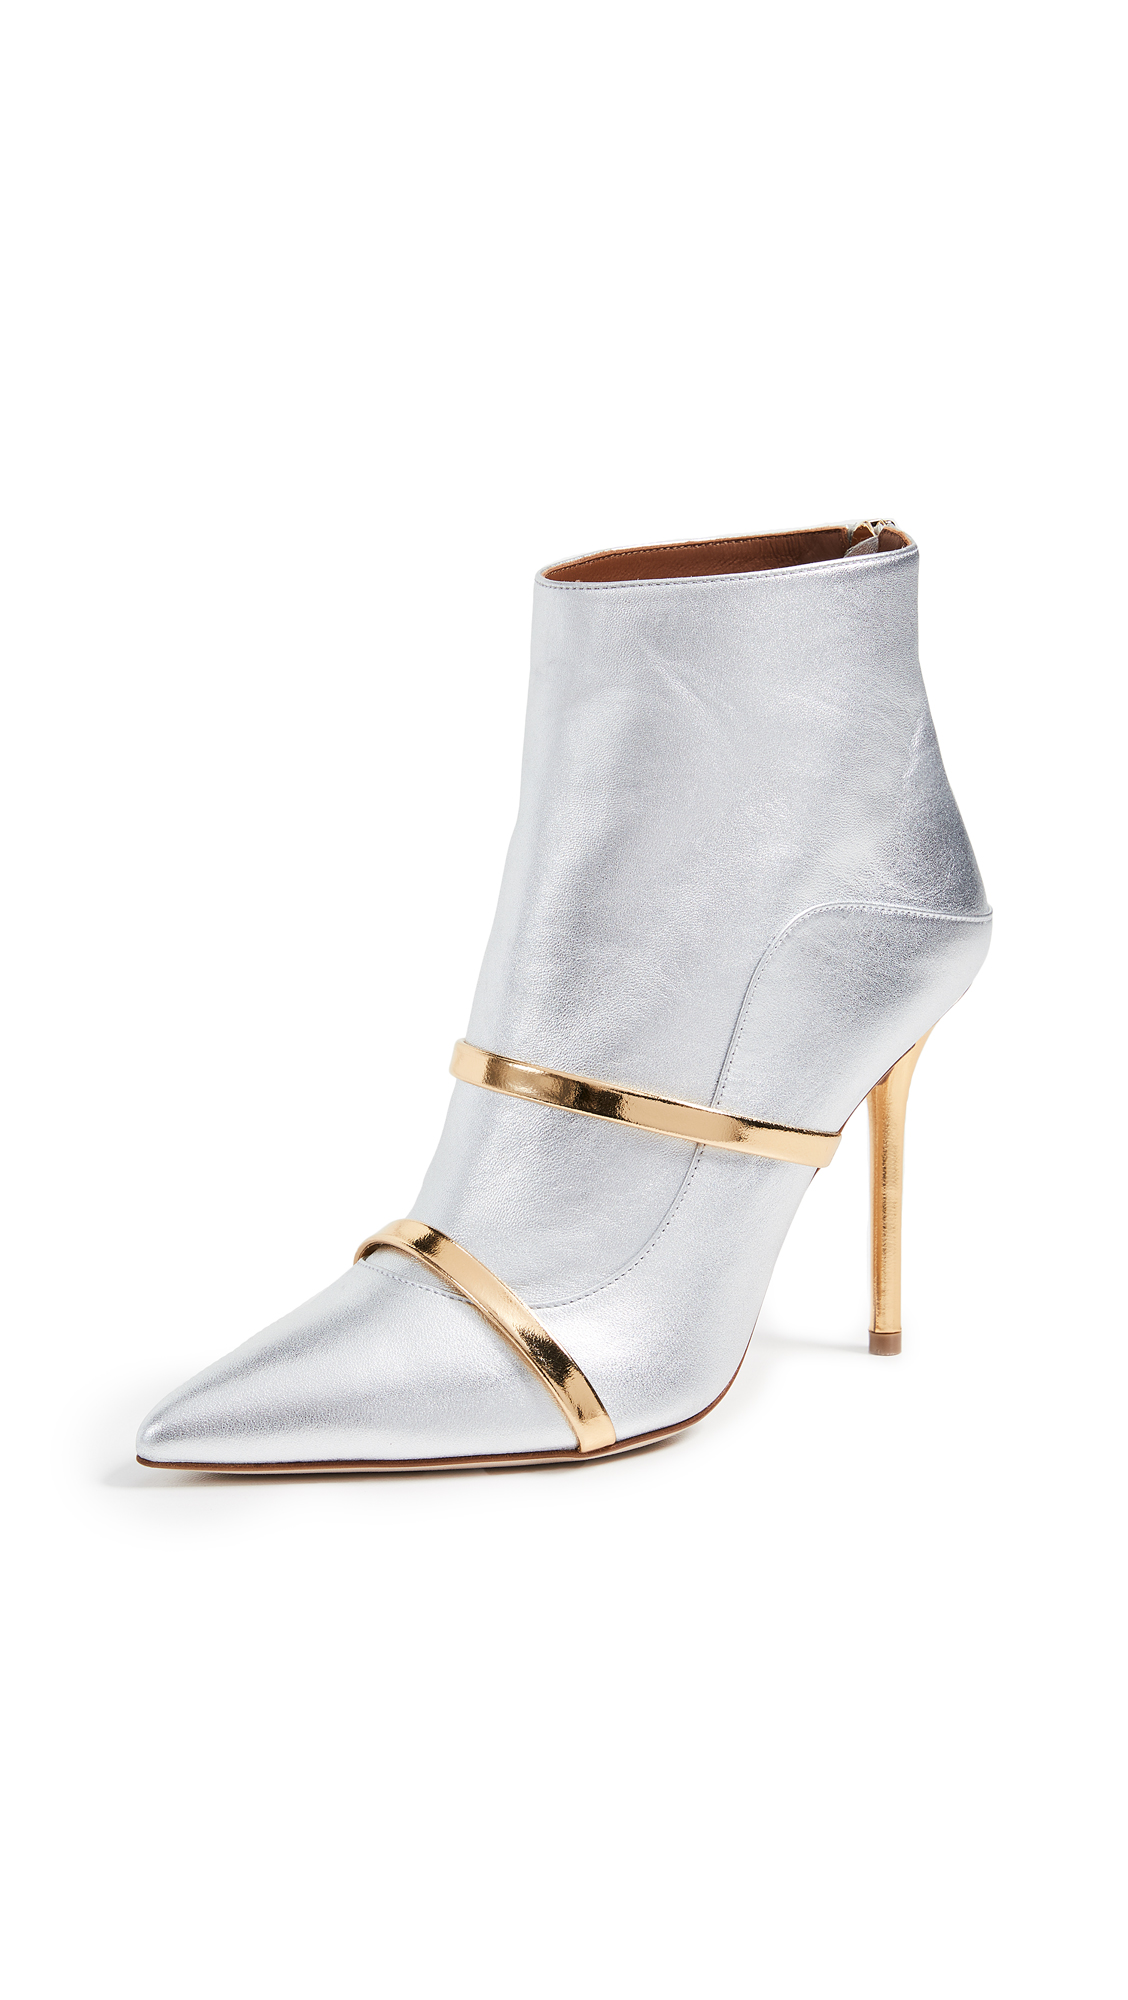 Malone Souliers by Roy Luwolt Madison Booties - Silver/Gold